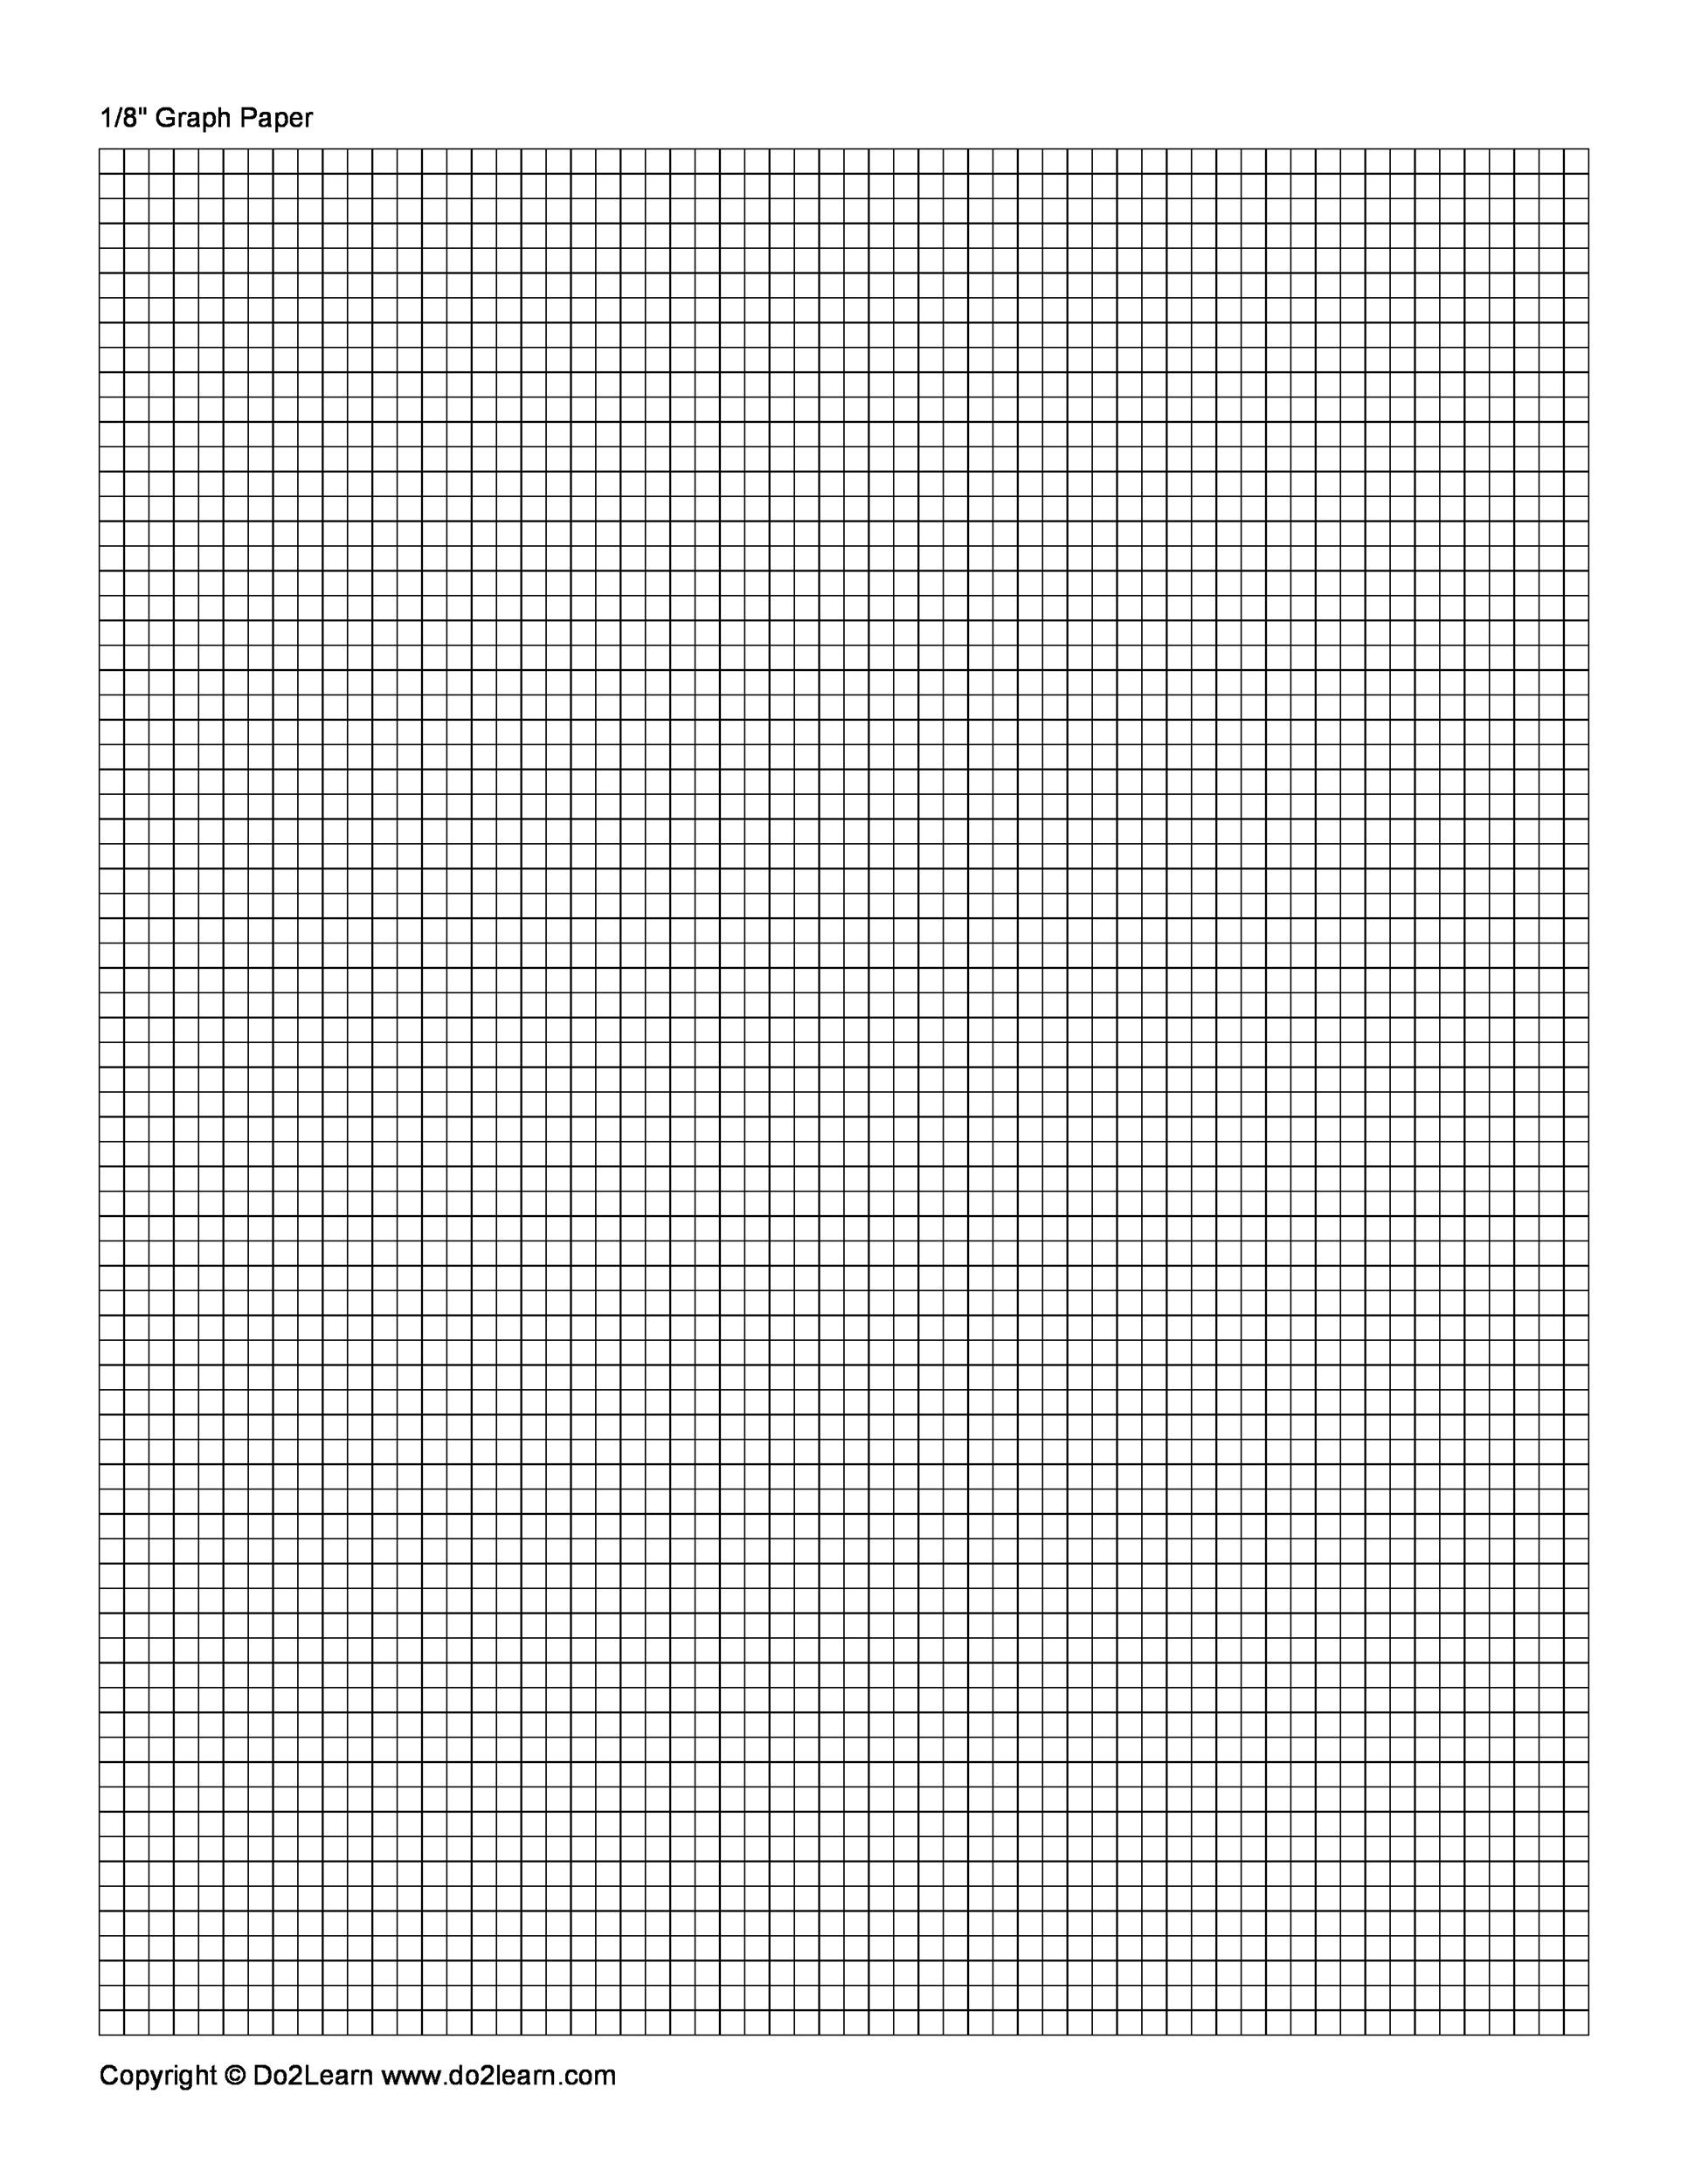 worksheet Number Graph Paper 30 free printable graph paper templates word pdf template lab 01